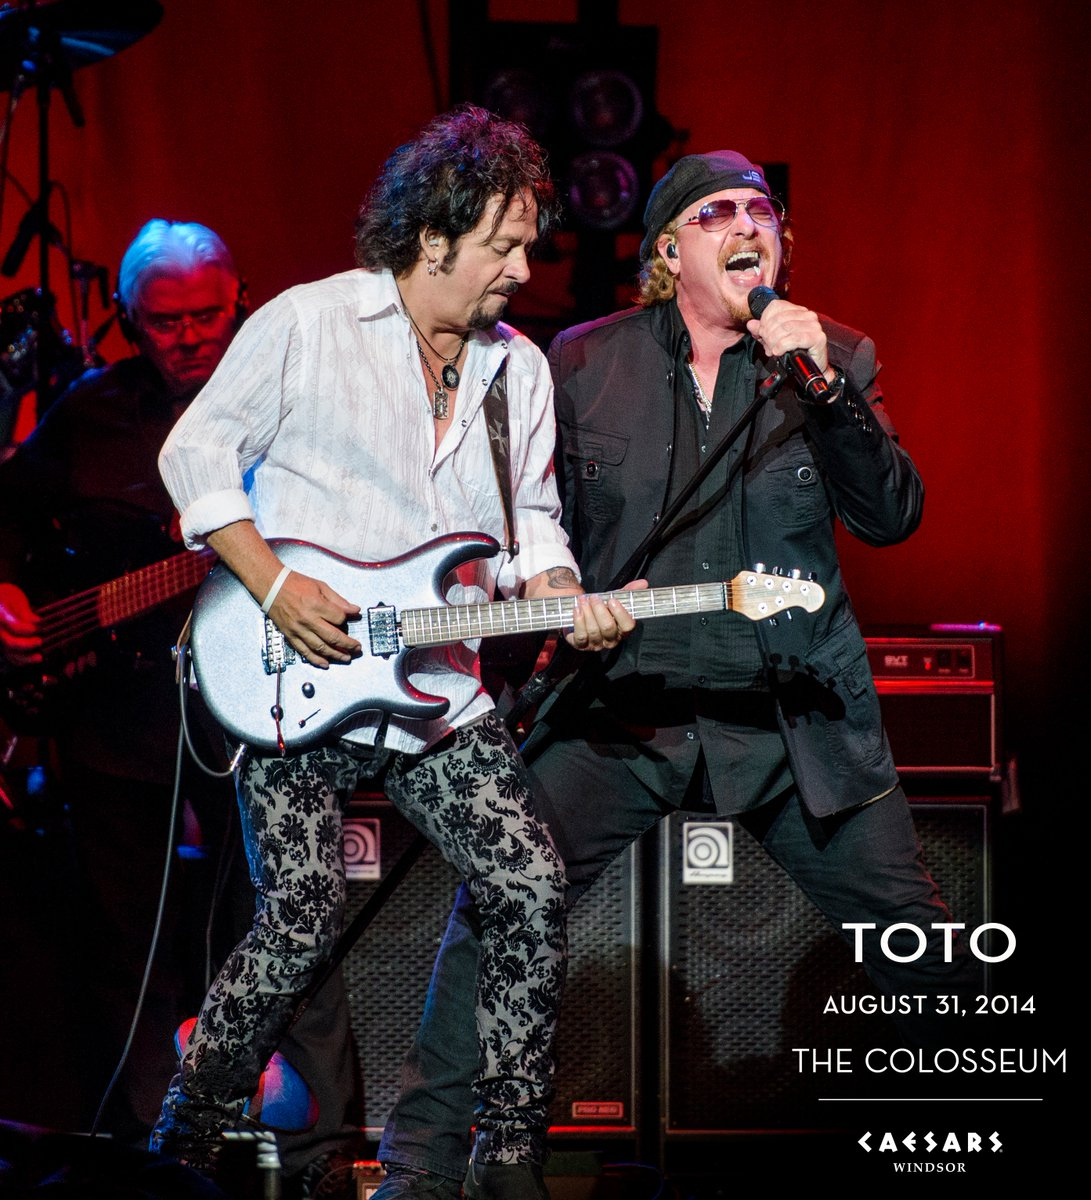 TOTO (@toto99com) | Twitter